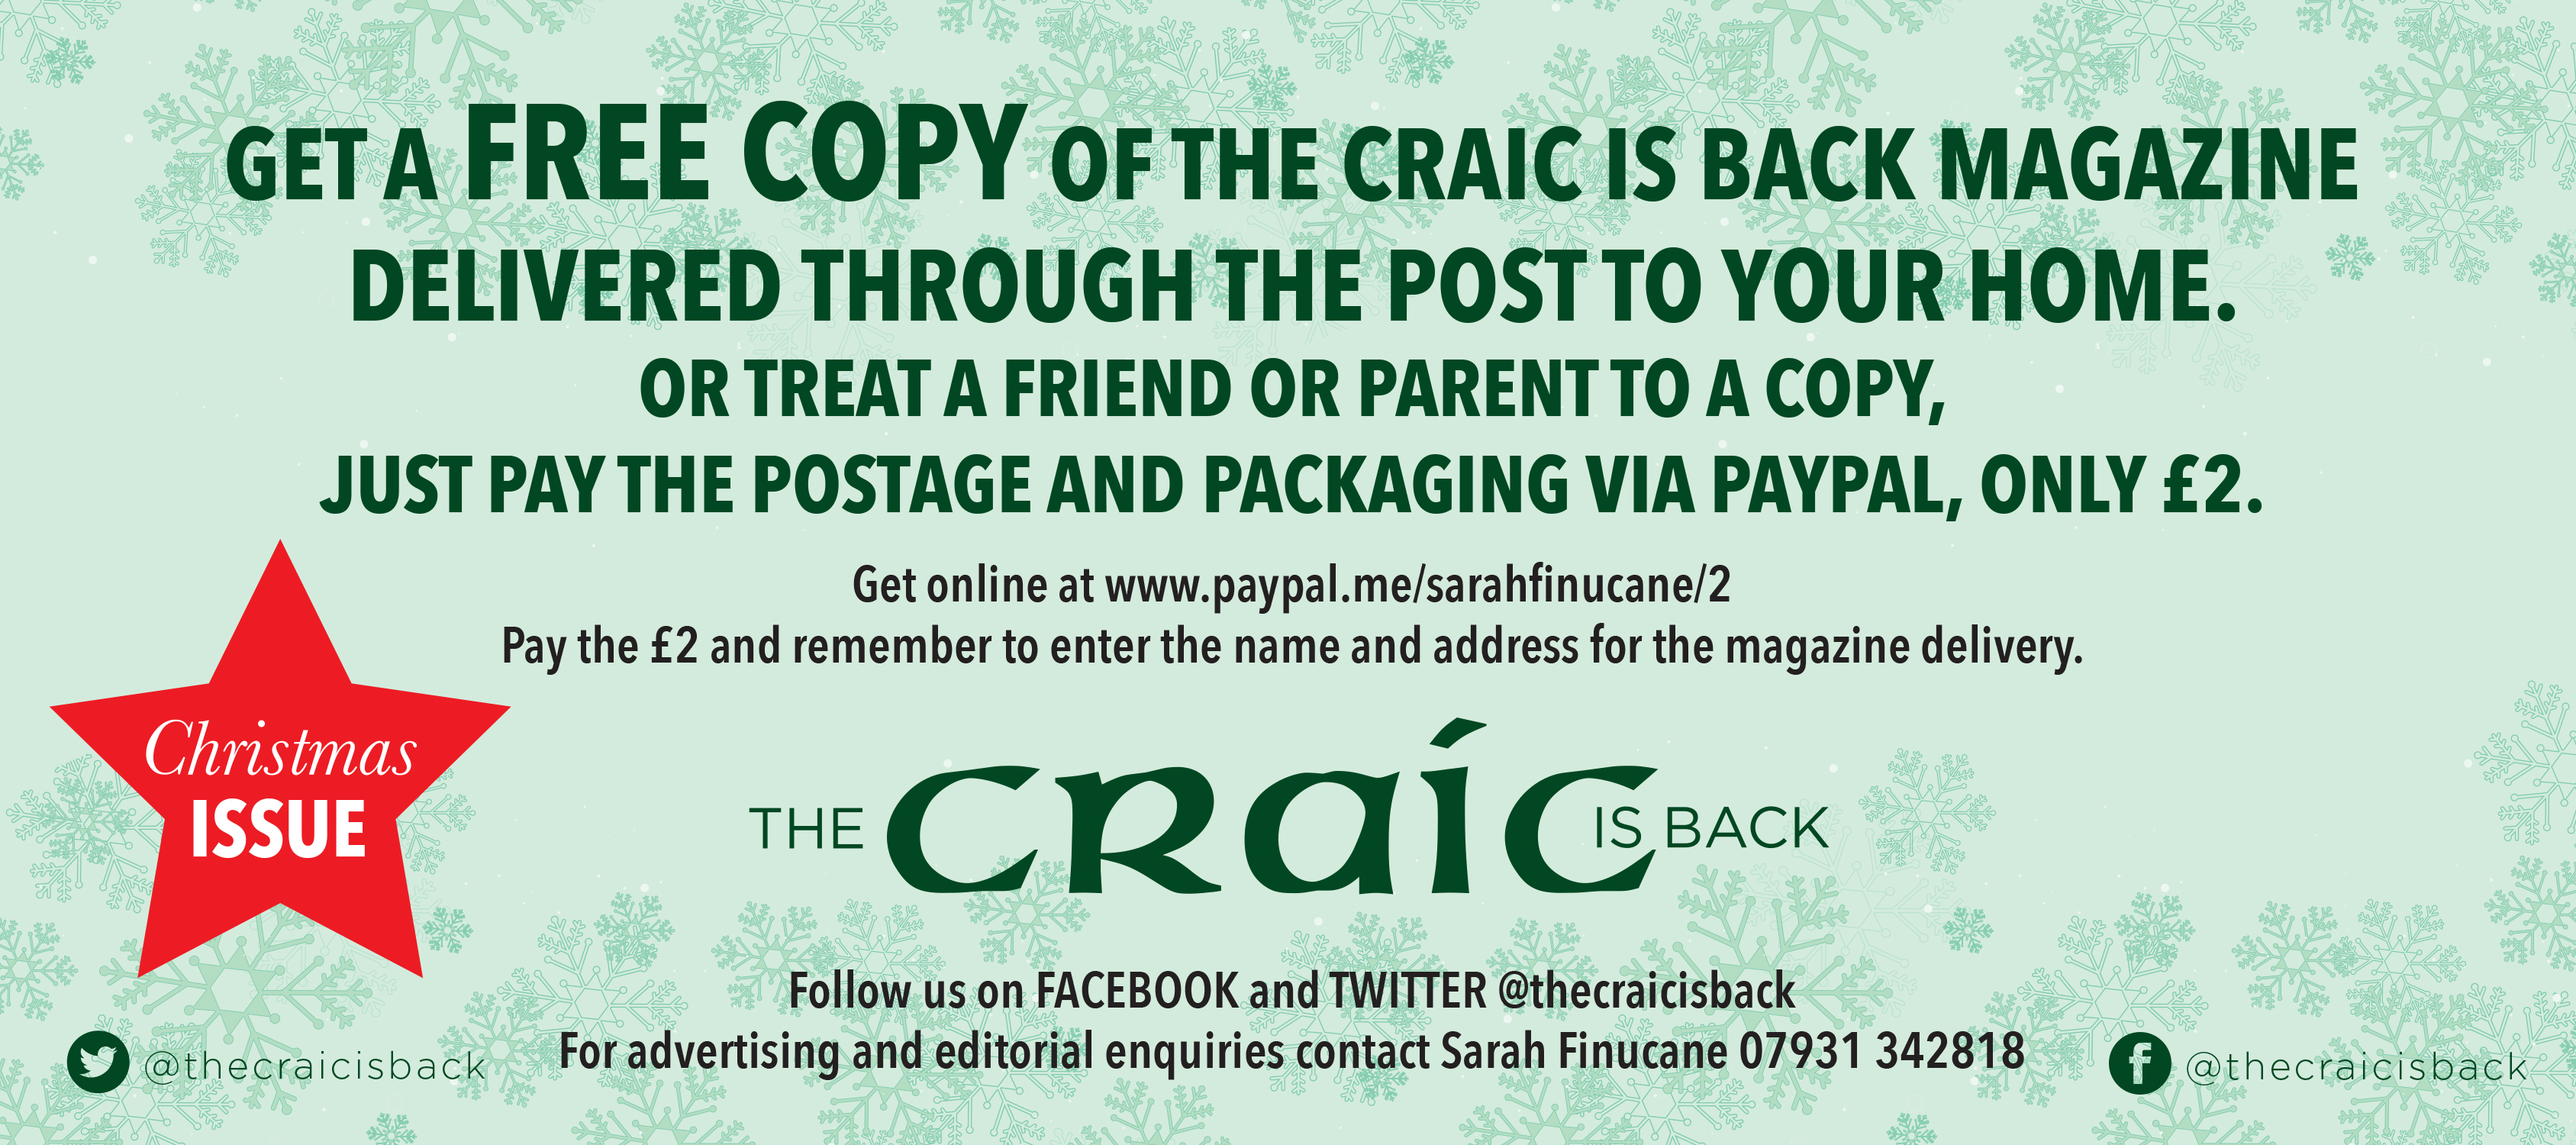 The Craic is Back - Get a free copy delivered!